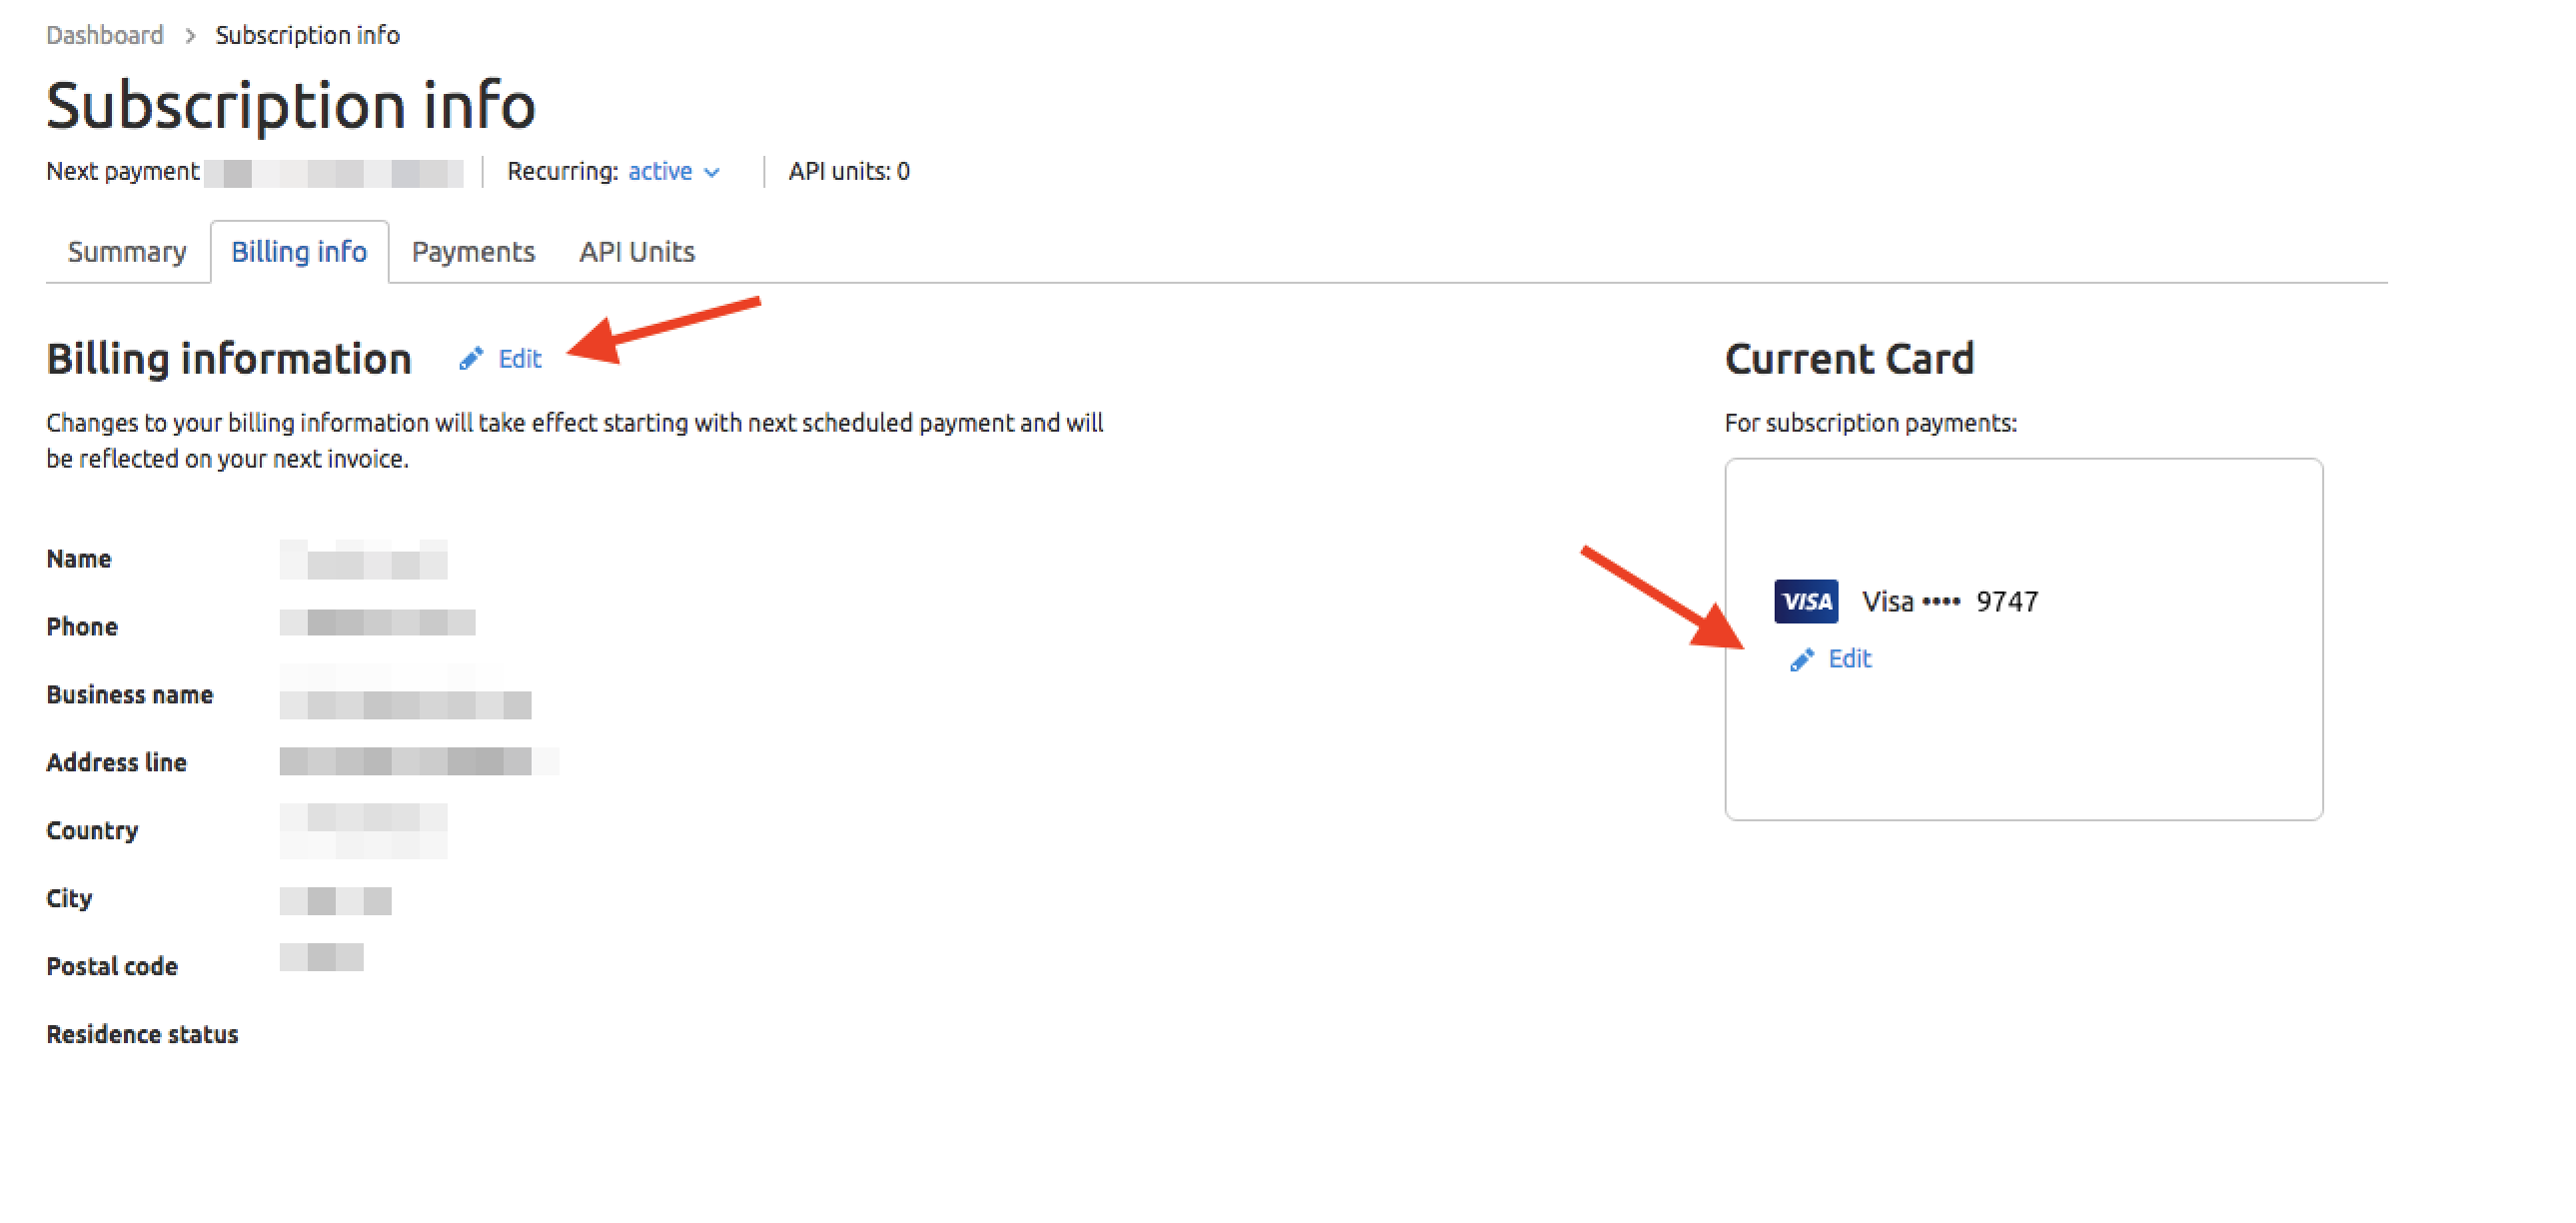 Where can I update my payment information? image 1